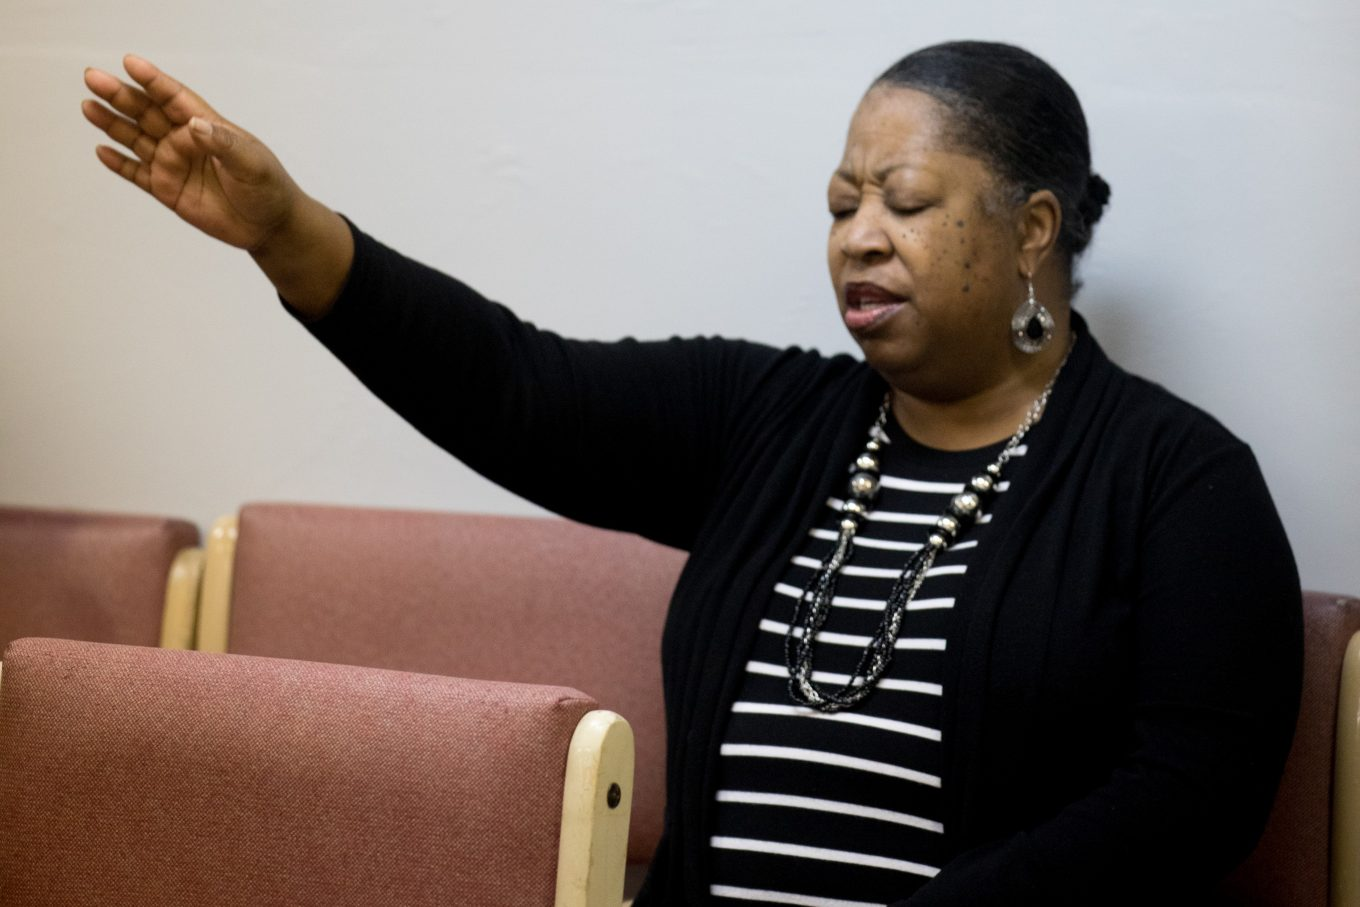 Debbie Spruell with hand raised in prayer at church